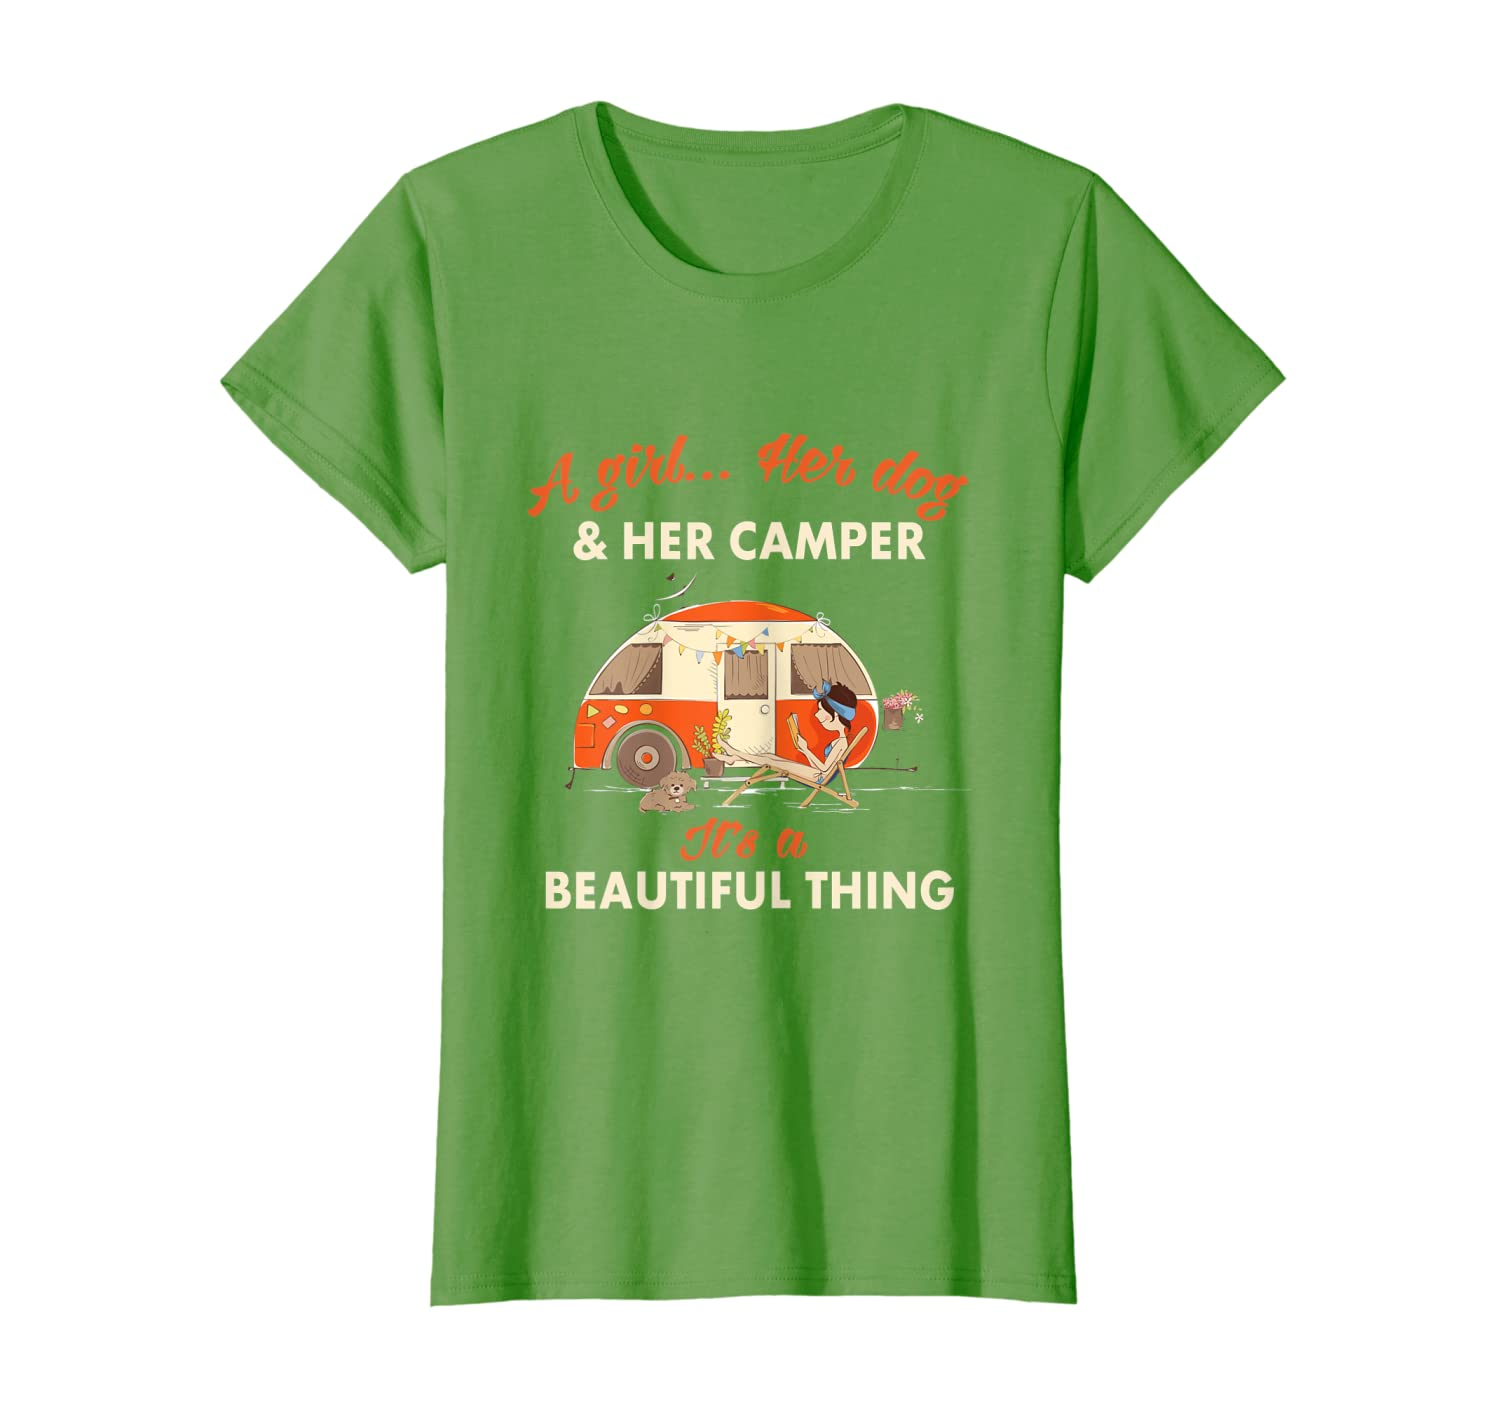 A Girl Her Dog & Her Camper Its A Beautiful Thing Camping T-shirt - Dogs Shirts For Men Women